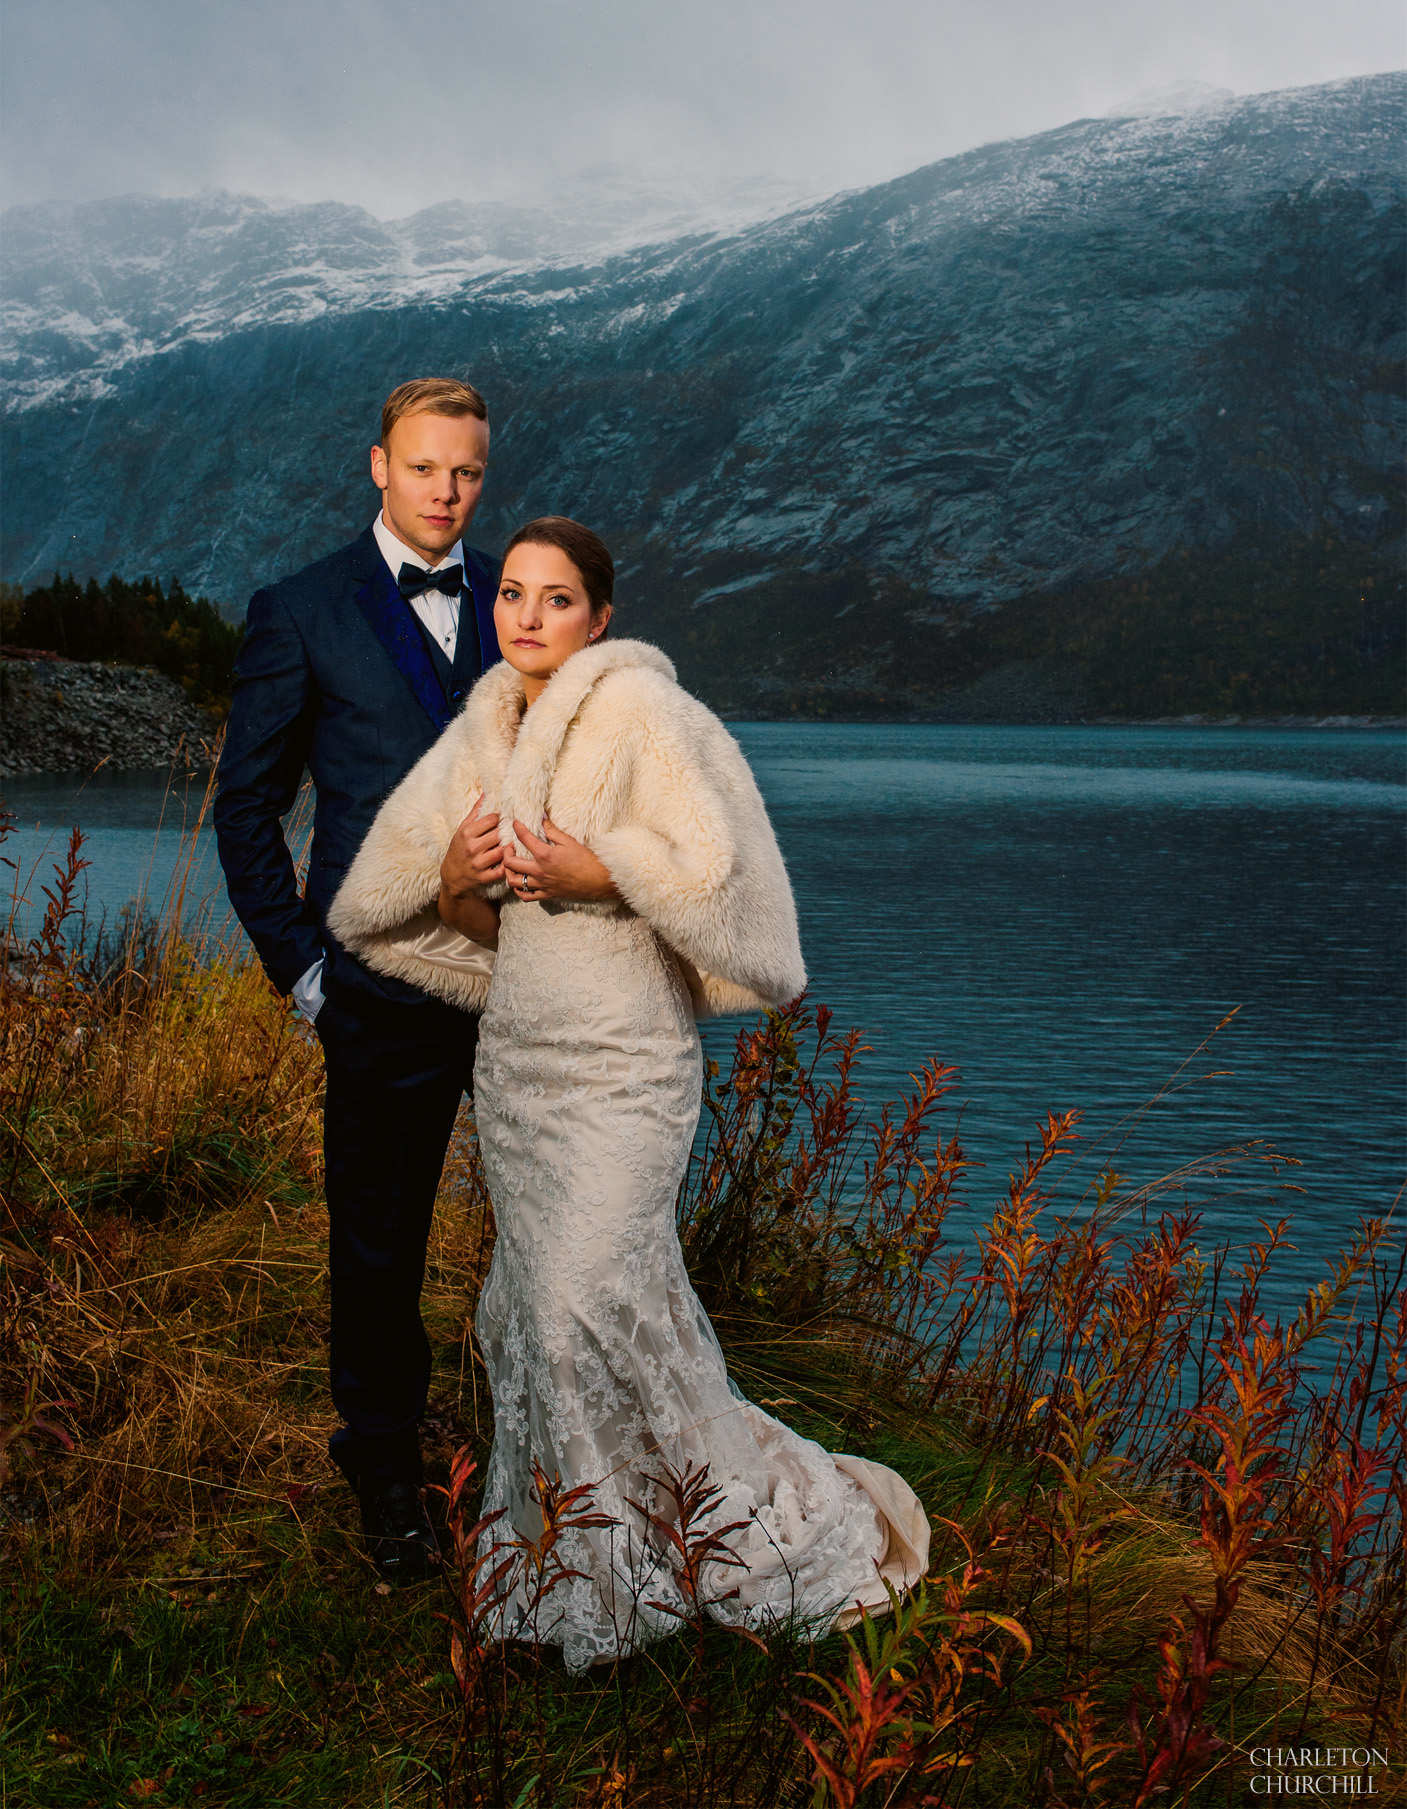 fall colors and rainy weather with a wedding couple, bride and groom in the rain in the fjords.